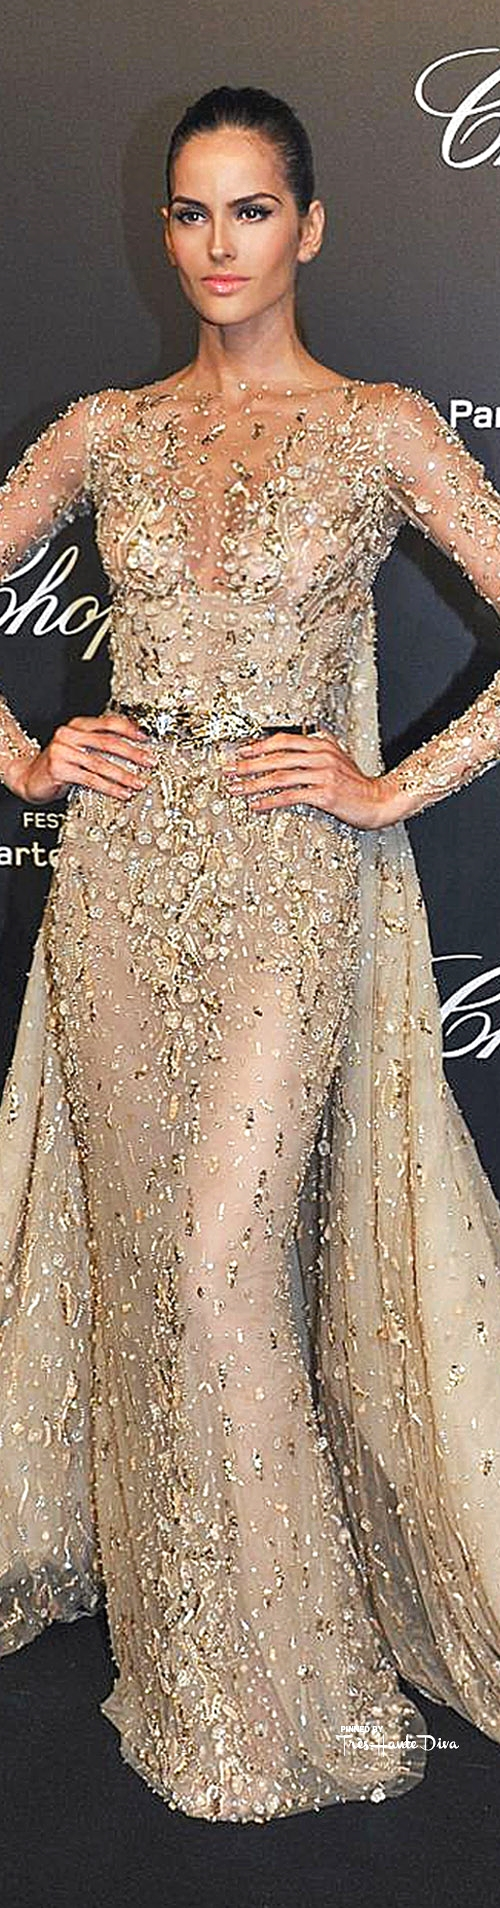 Izabel Goulart in Zuhair Murad Couture                                        Best Image